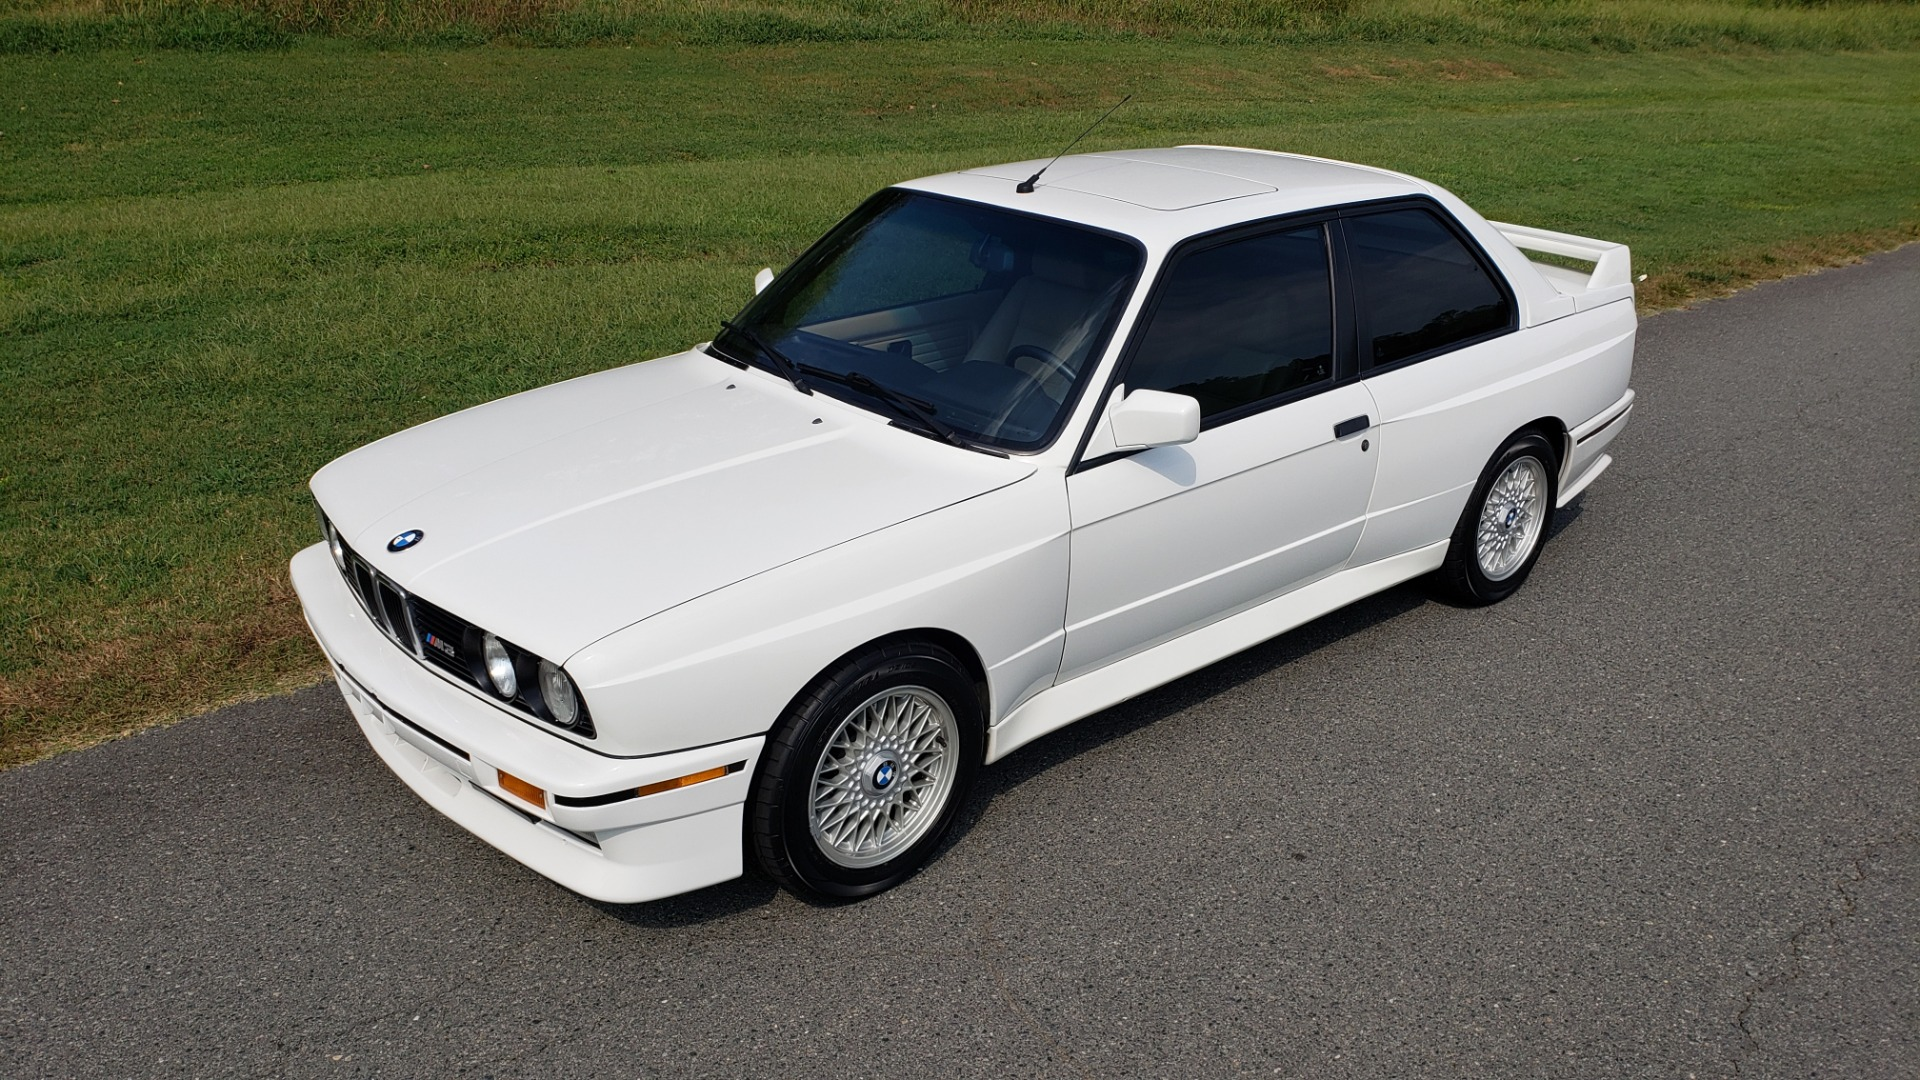 Used 1989 BMW M3 COUPE 2DR / 5-SPEED MAN / LOW MILES / SUPER CLEAN for sale Sold at Formula Imports in Charlotte NC 28227 18